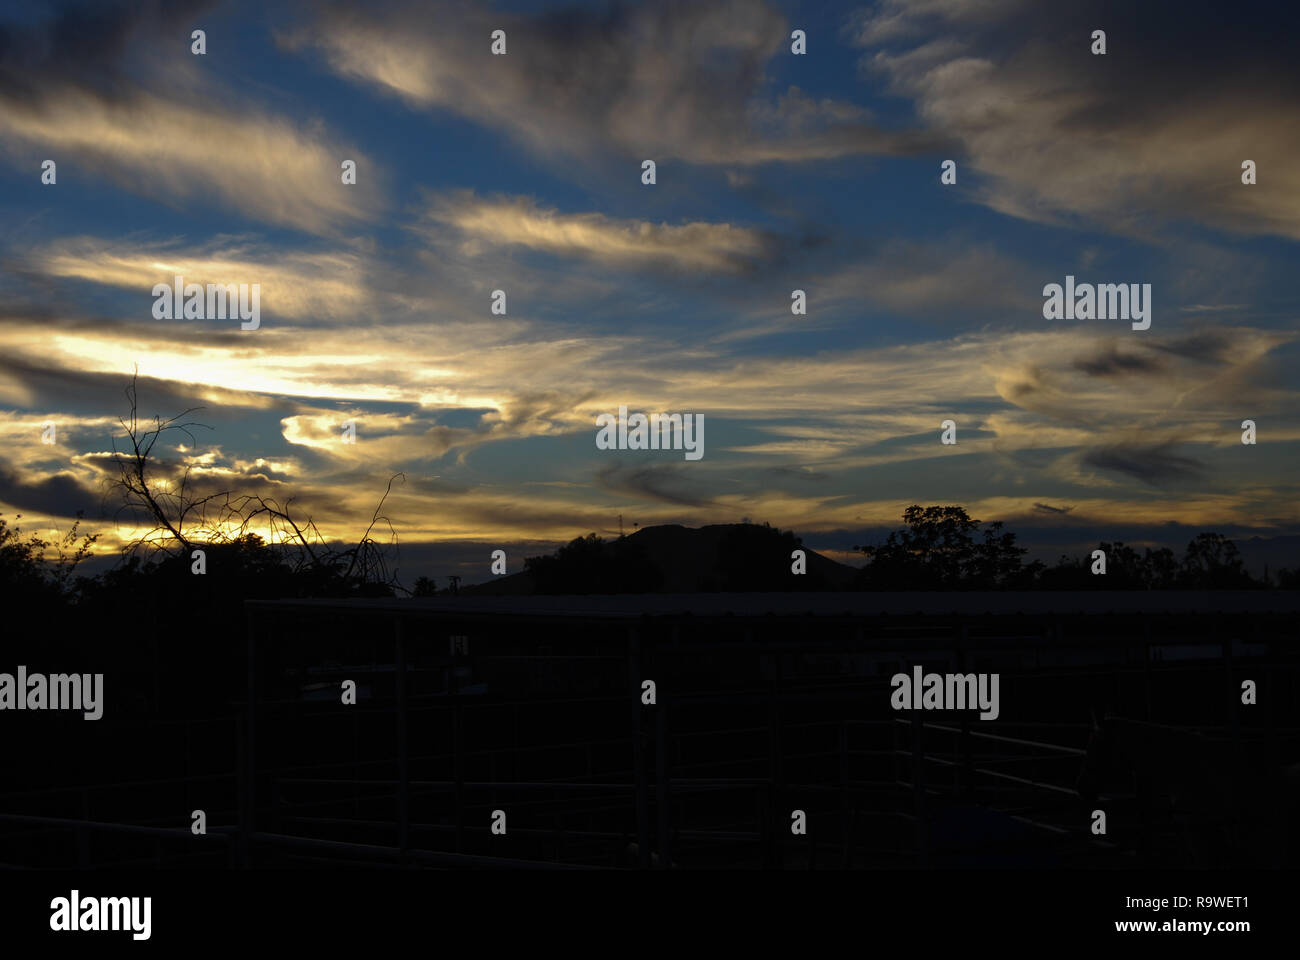 Sunset over the ranch - Stock Image